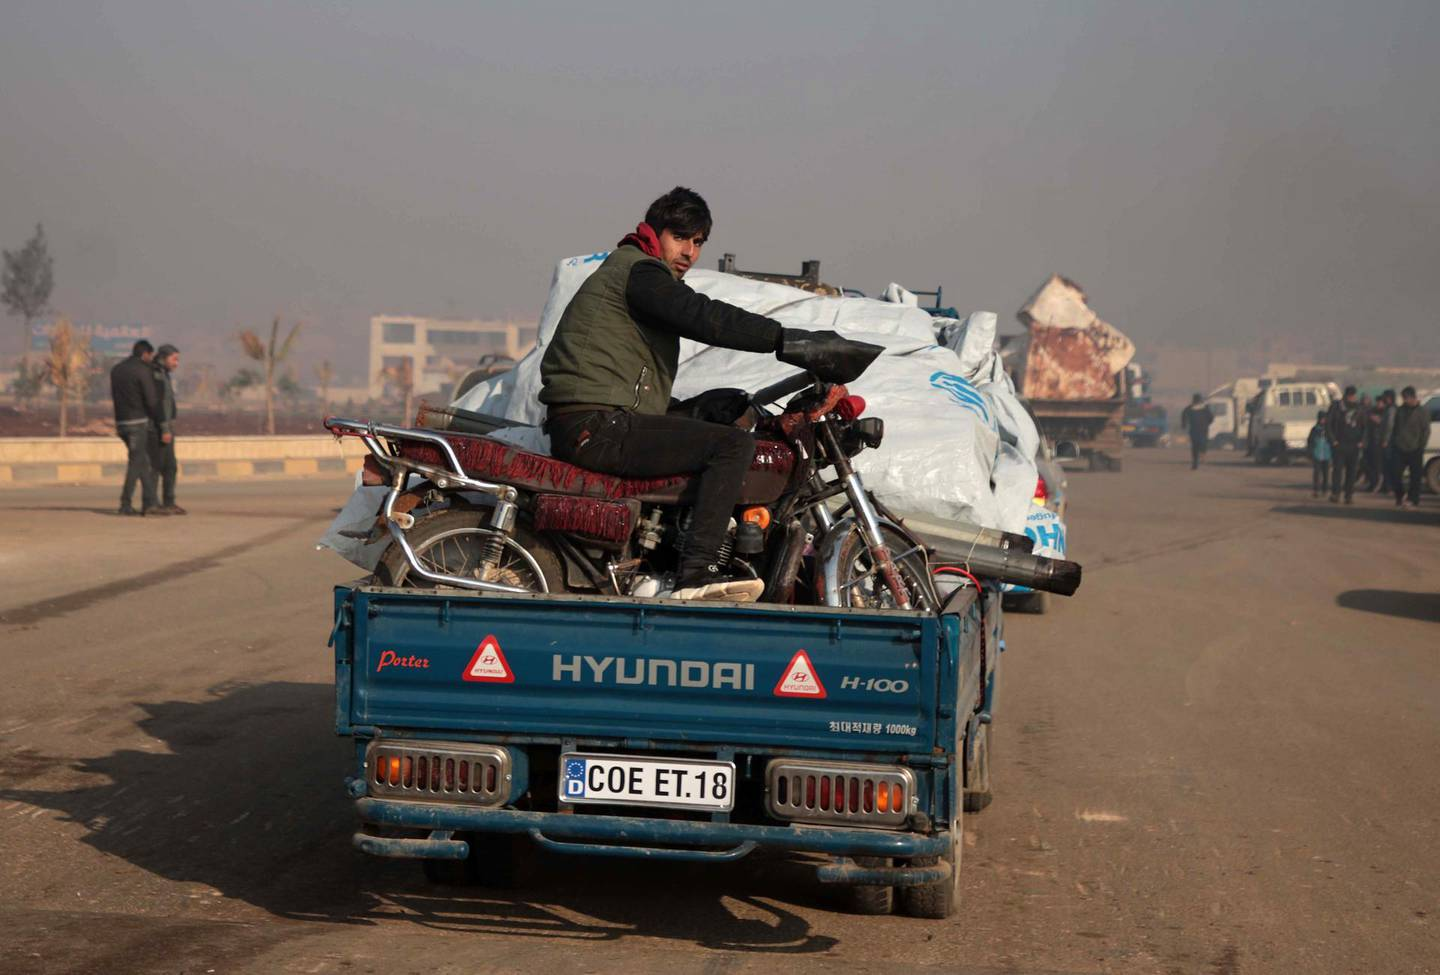 Syrians carrying their belongings drive towards the northern areas of Syria's Idlib province near the Syrian-Turkish border as they flee the bombardments in the southern areas of the country's last major opposition bastion, on December 20, 2019. / AFP / Aaref WATAD